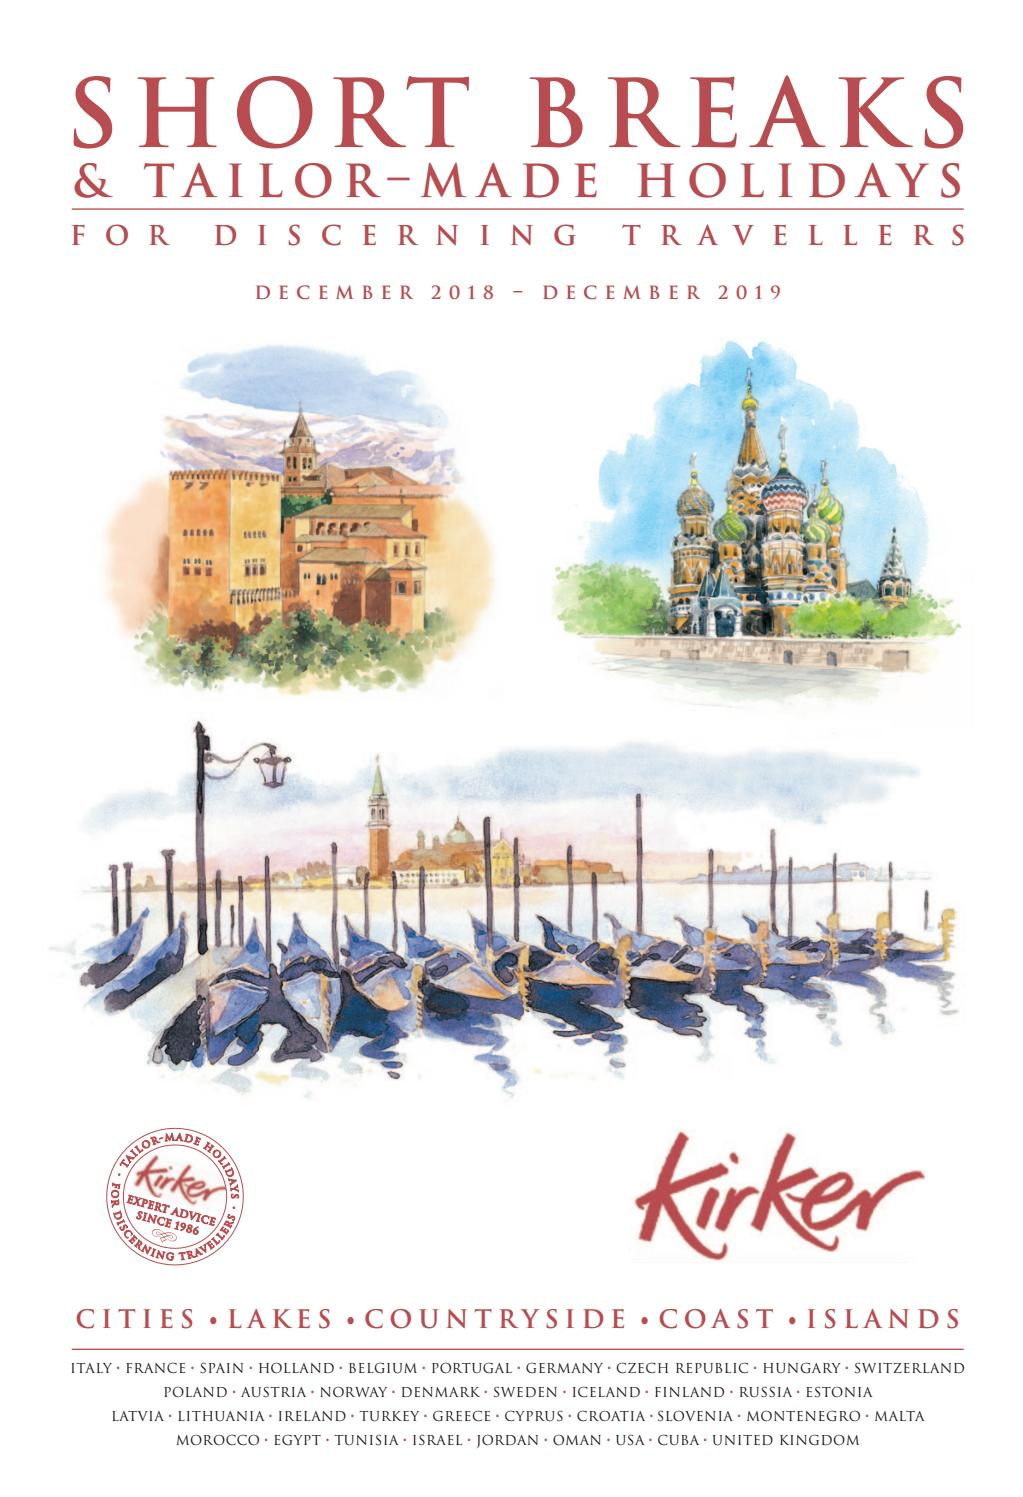 1c1ad8ad16f0 Short Breaks   Tailor-made Holidays For Discerning Travellers 2019   Kirker  Holidays by Kirker Holidays - issuu